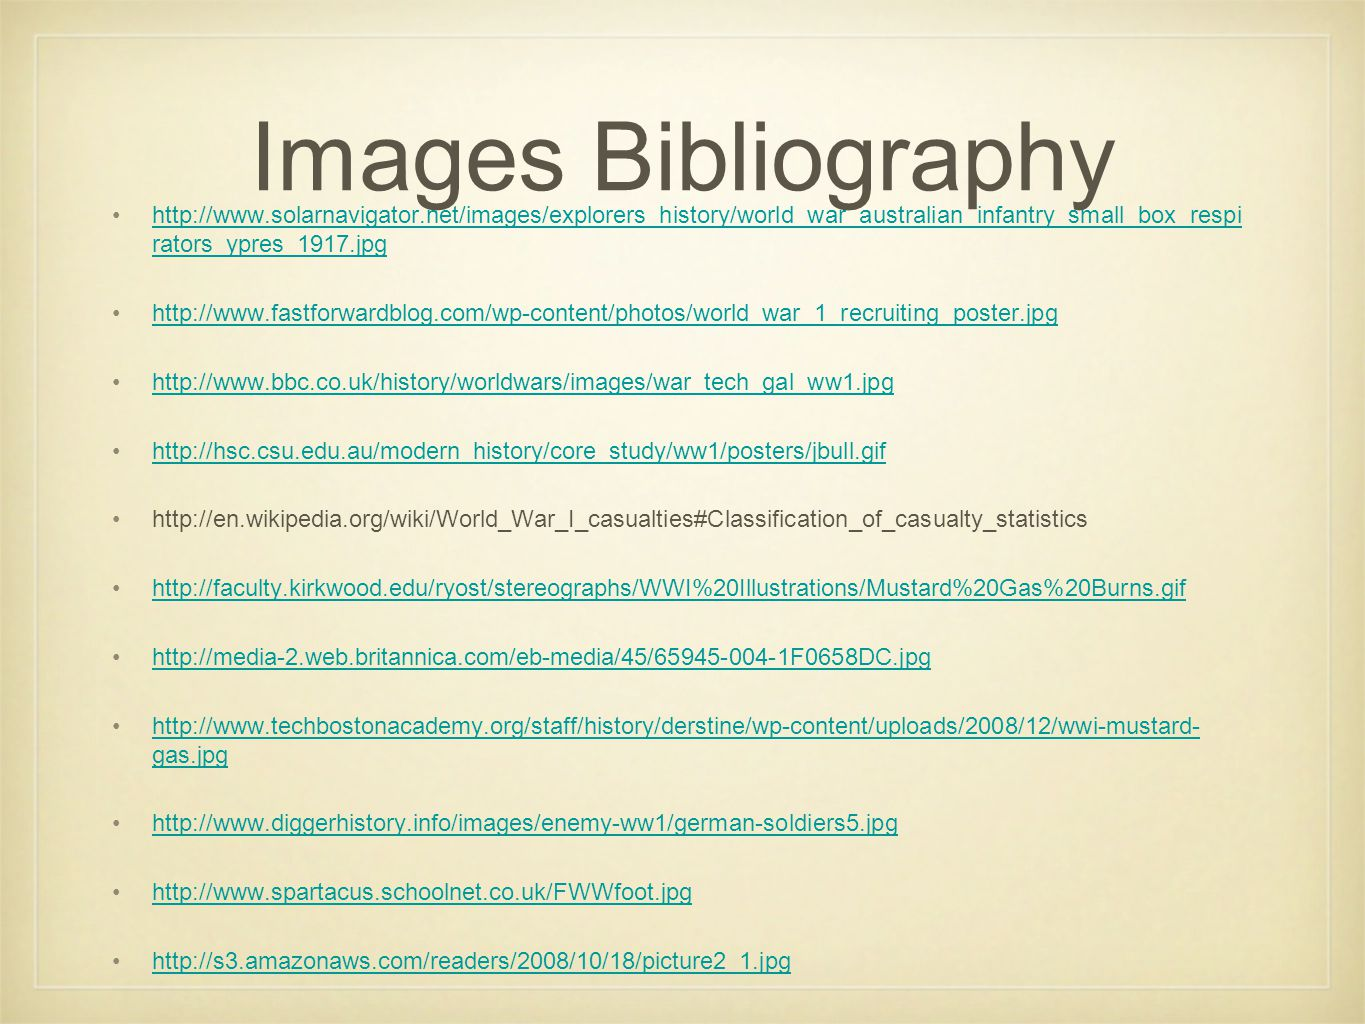 Images Bibliography http://www.solarnavigator.net/images/explorers_history/world_war_australian_infantry_small_box_respir ators_ypres_1917.jpg.